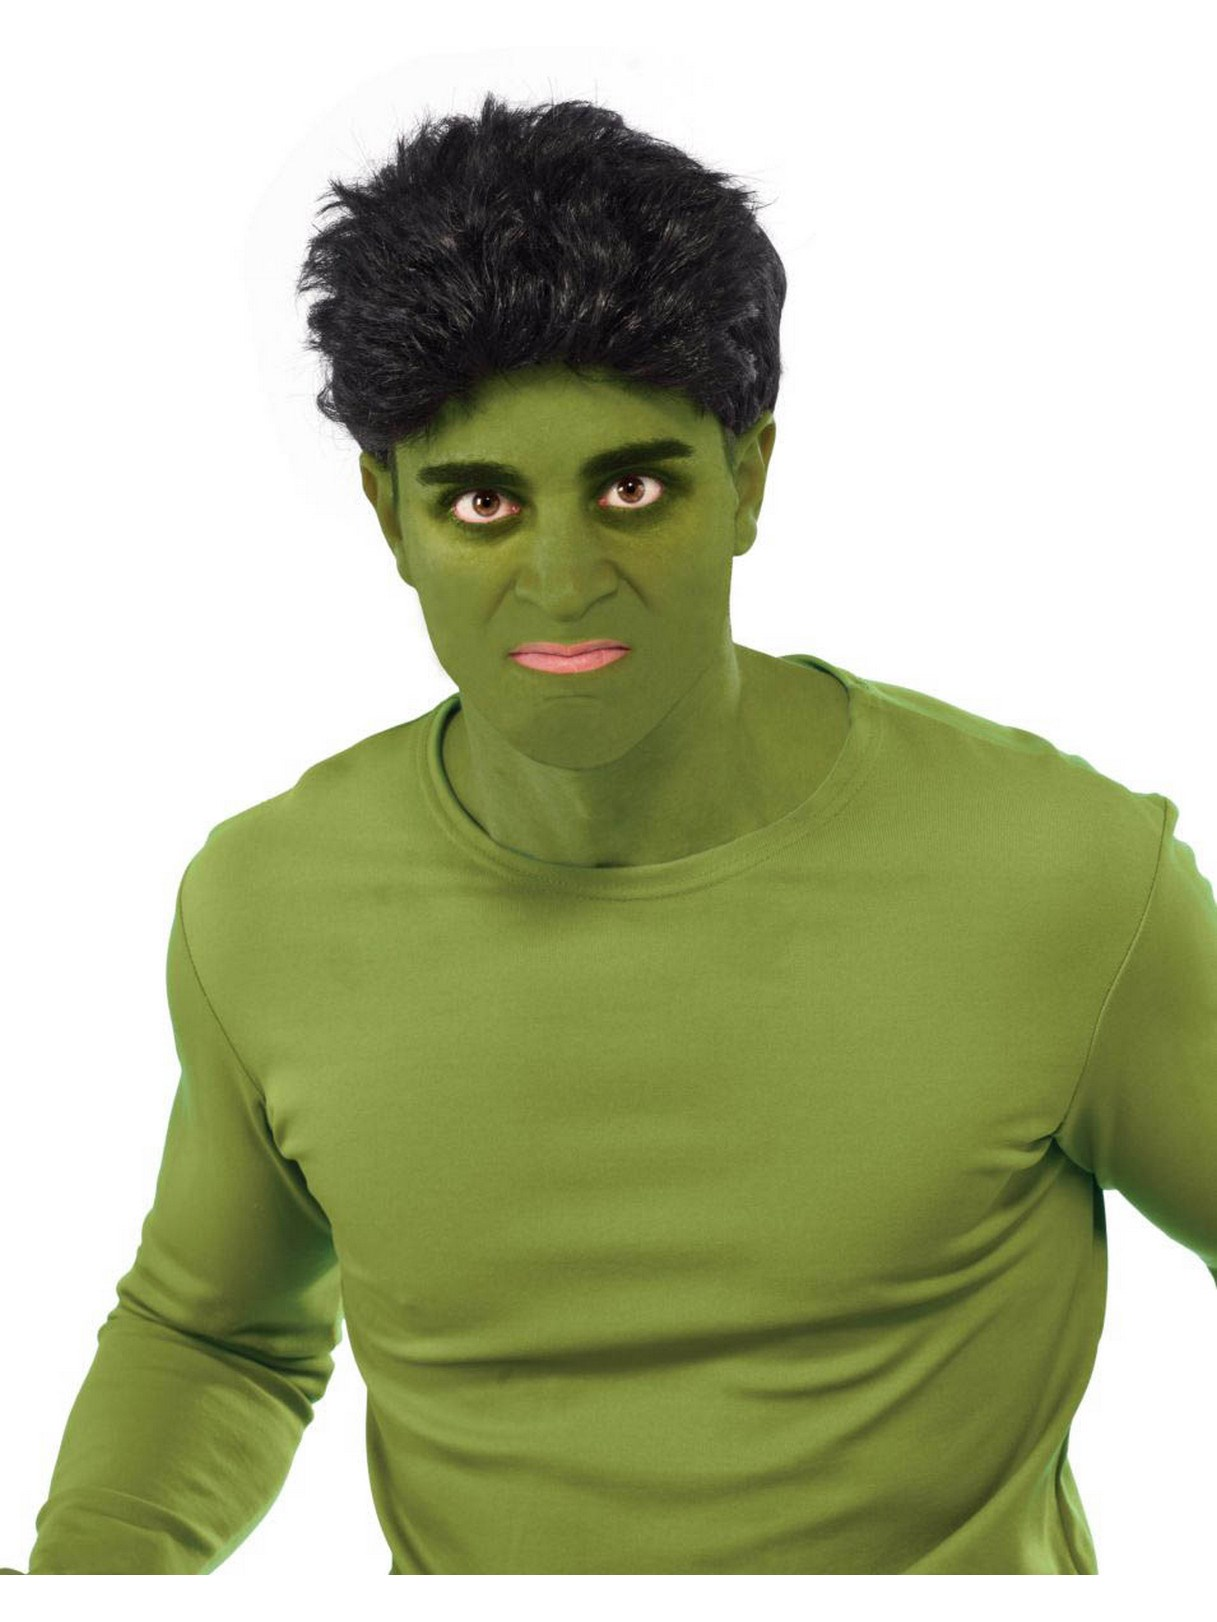 Avengers 2 - Age of Ultron: Hulk Wig For Adults